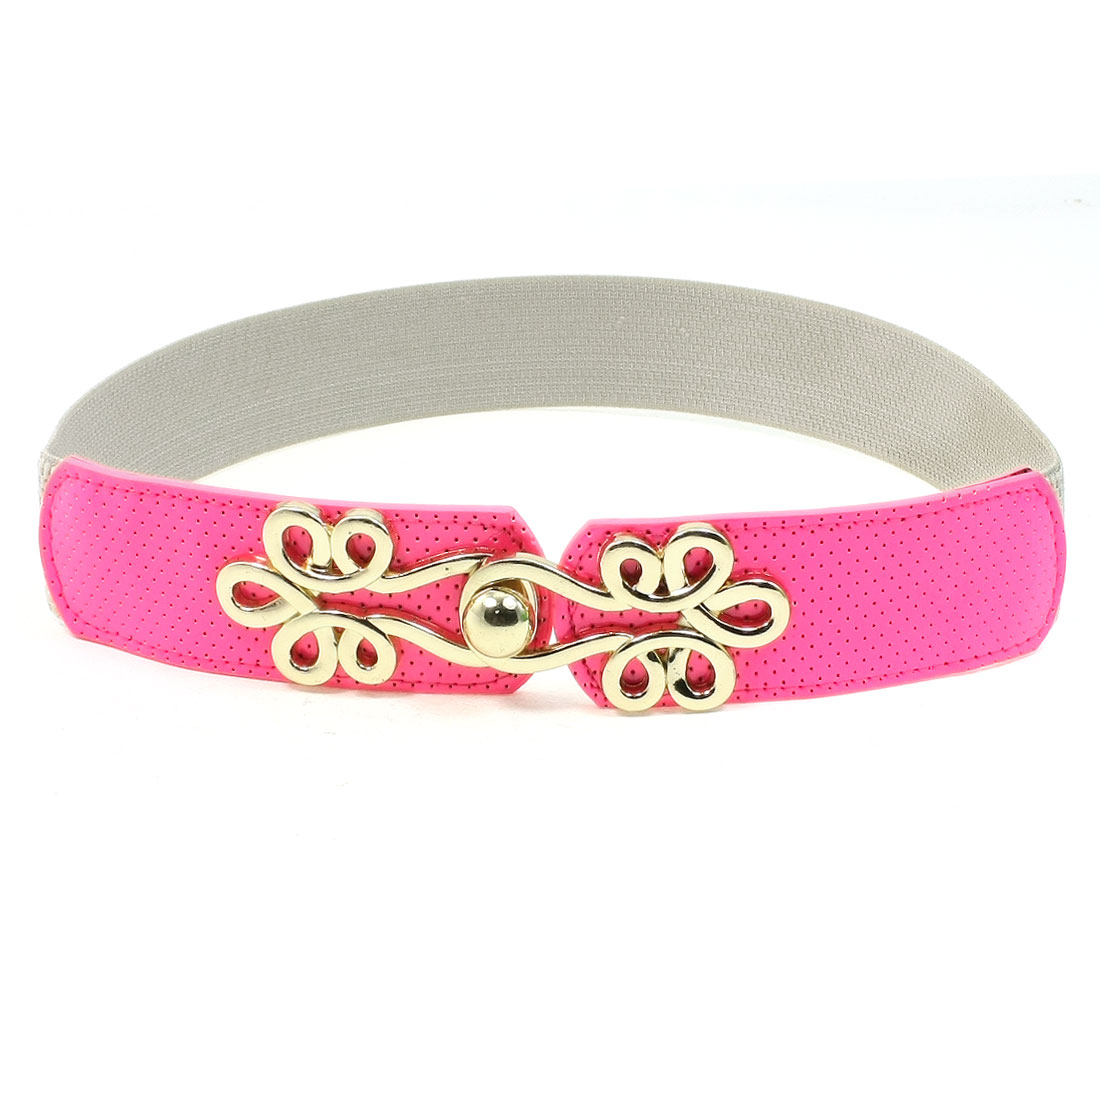 Gold Tone Metal Buckle Hot Pink Faux Leather Stretchy Waistbelt for Women